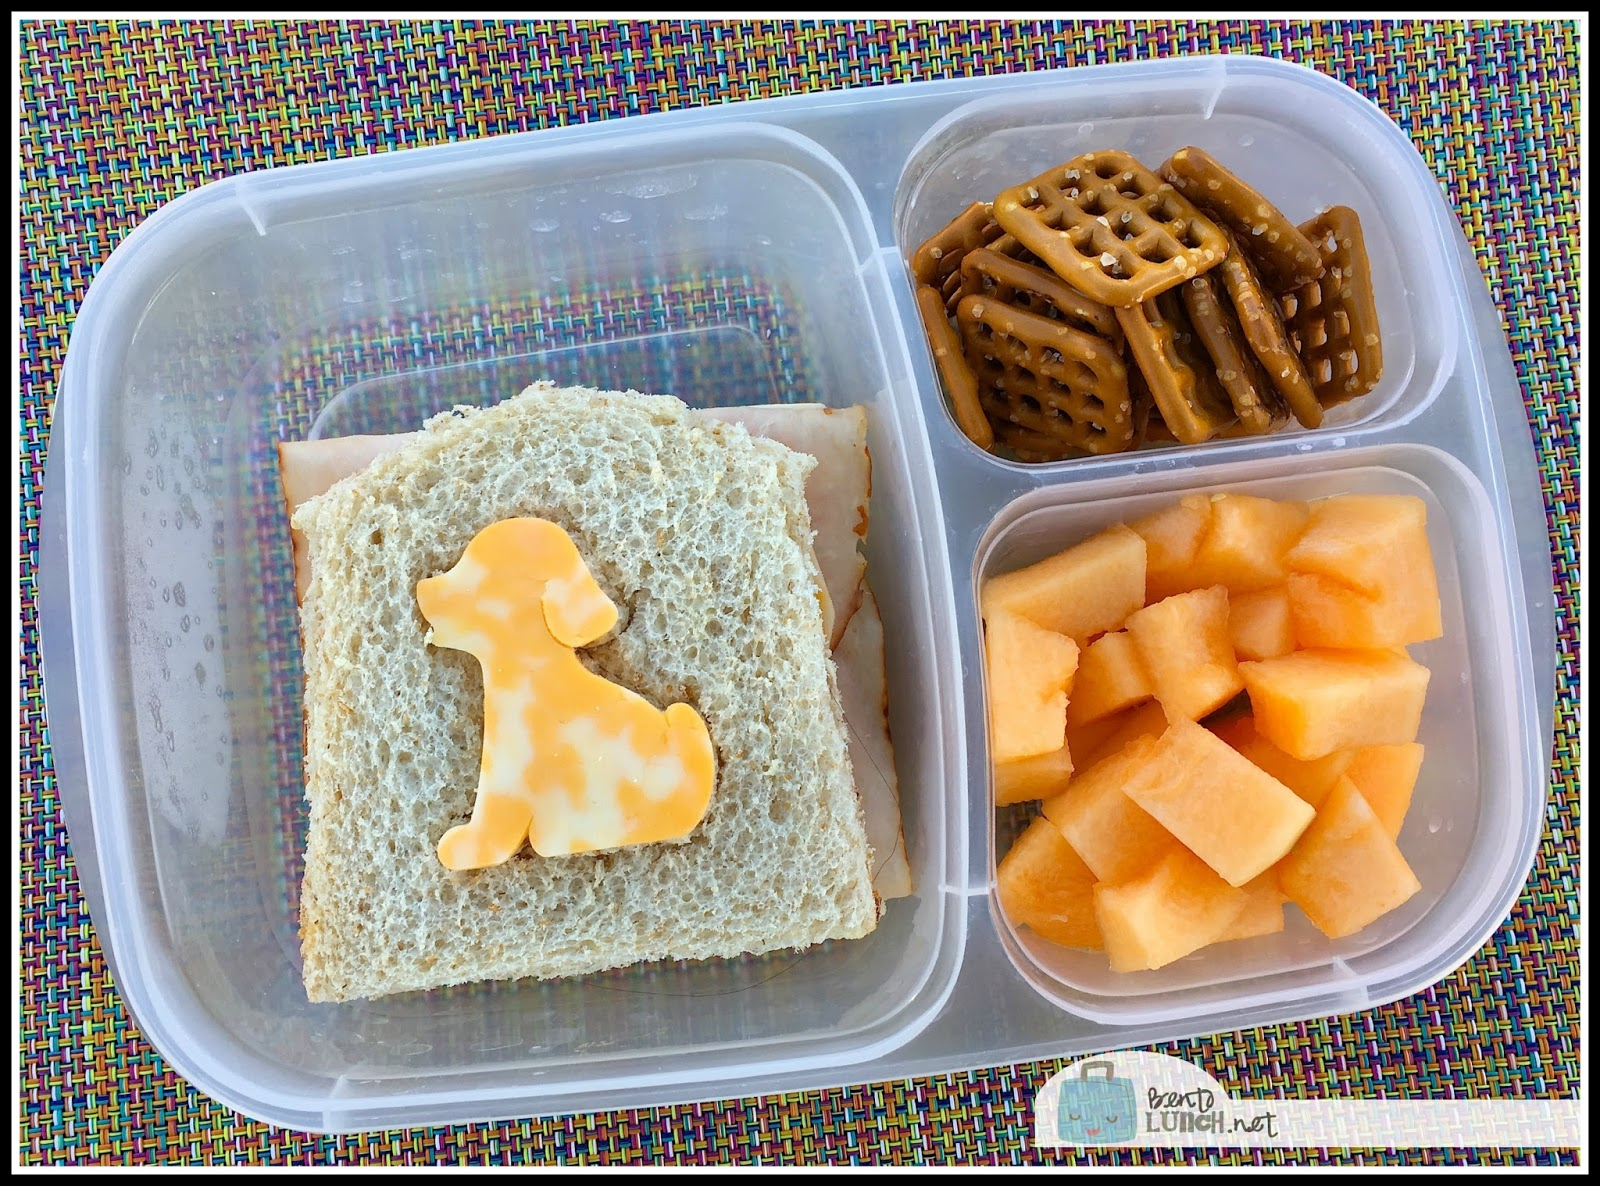 BentoLunch net - What's for lunch at our house: National Pet